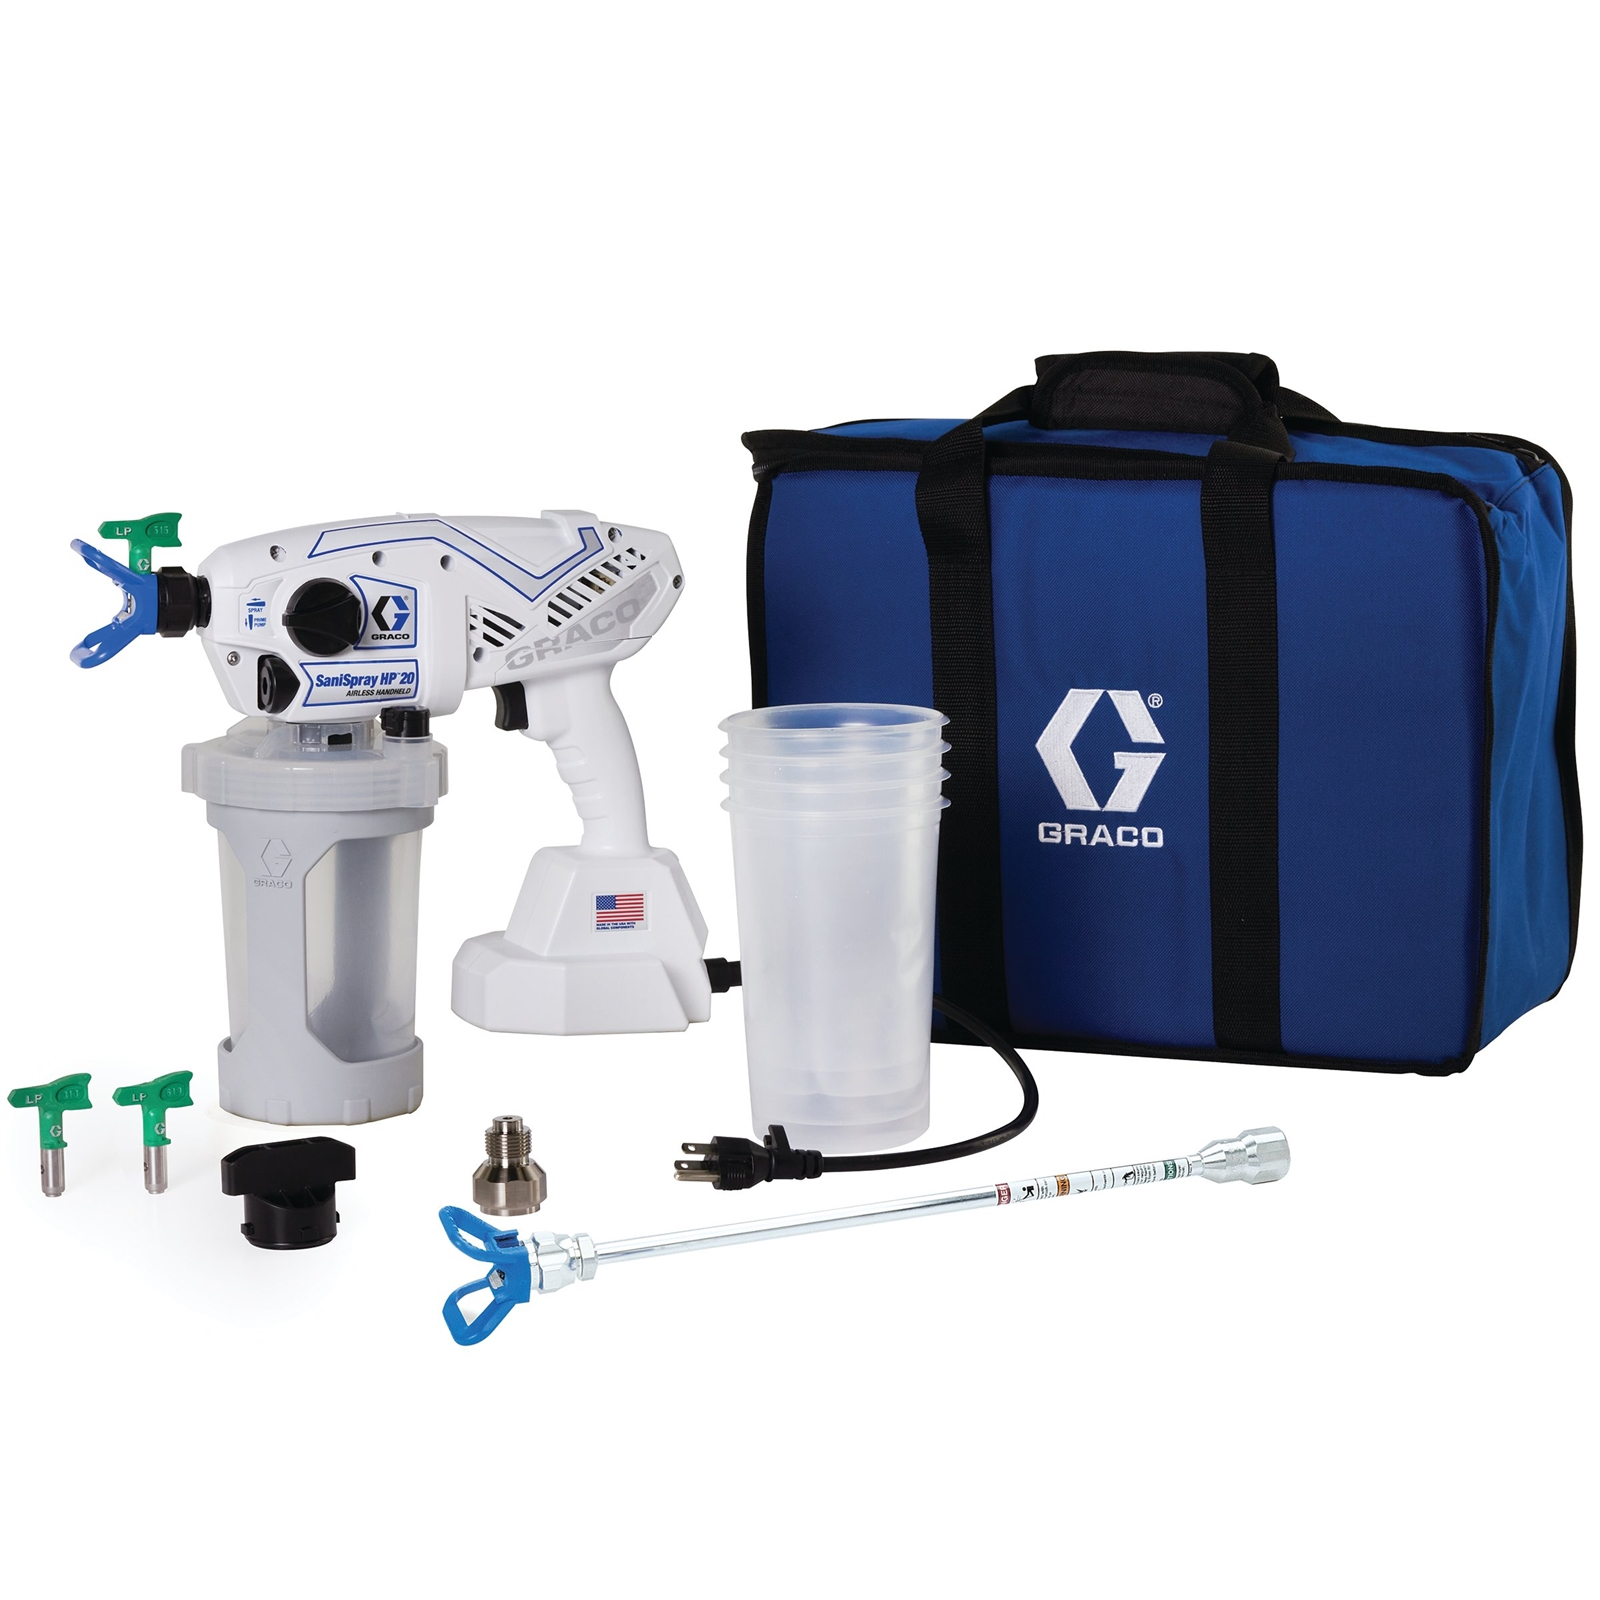 Graco SaniSpray HP 20 - Corded